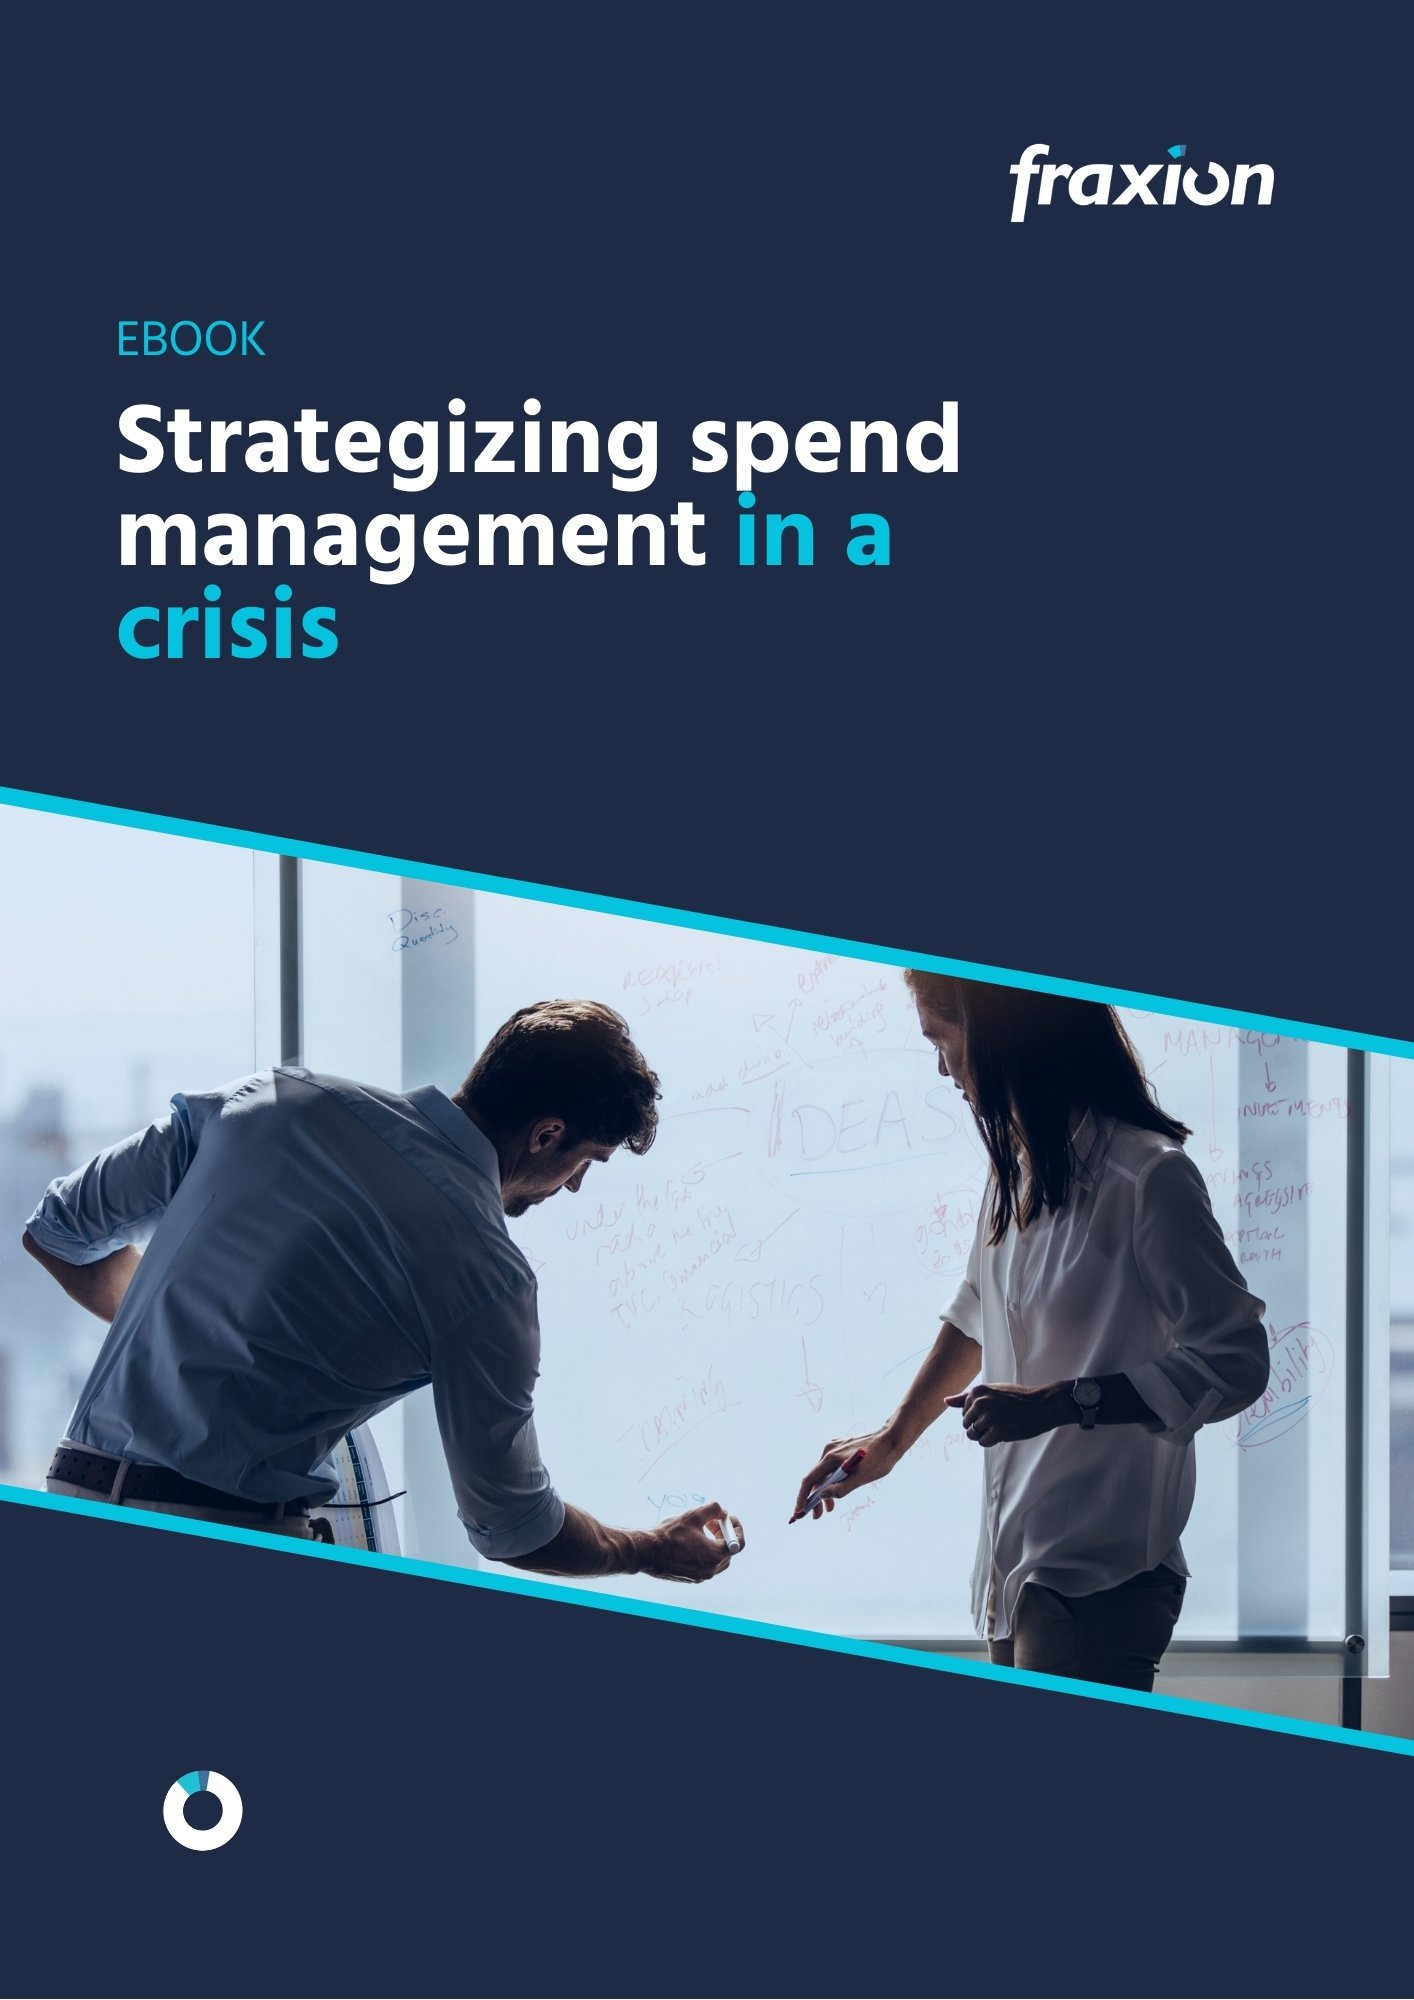 Strategizing spend management in a crisis (1)